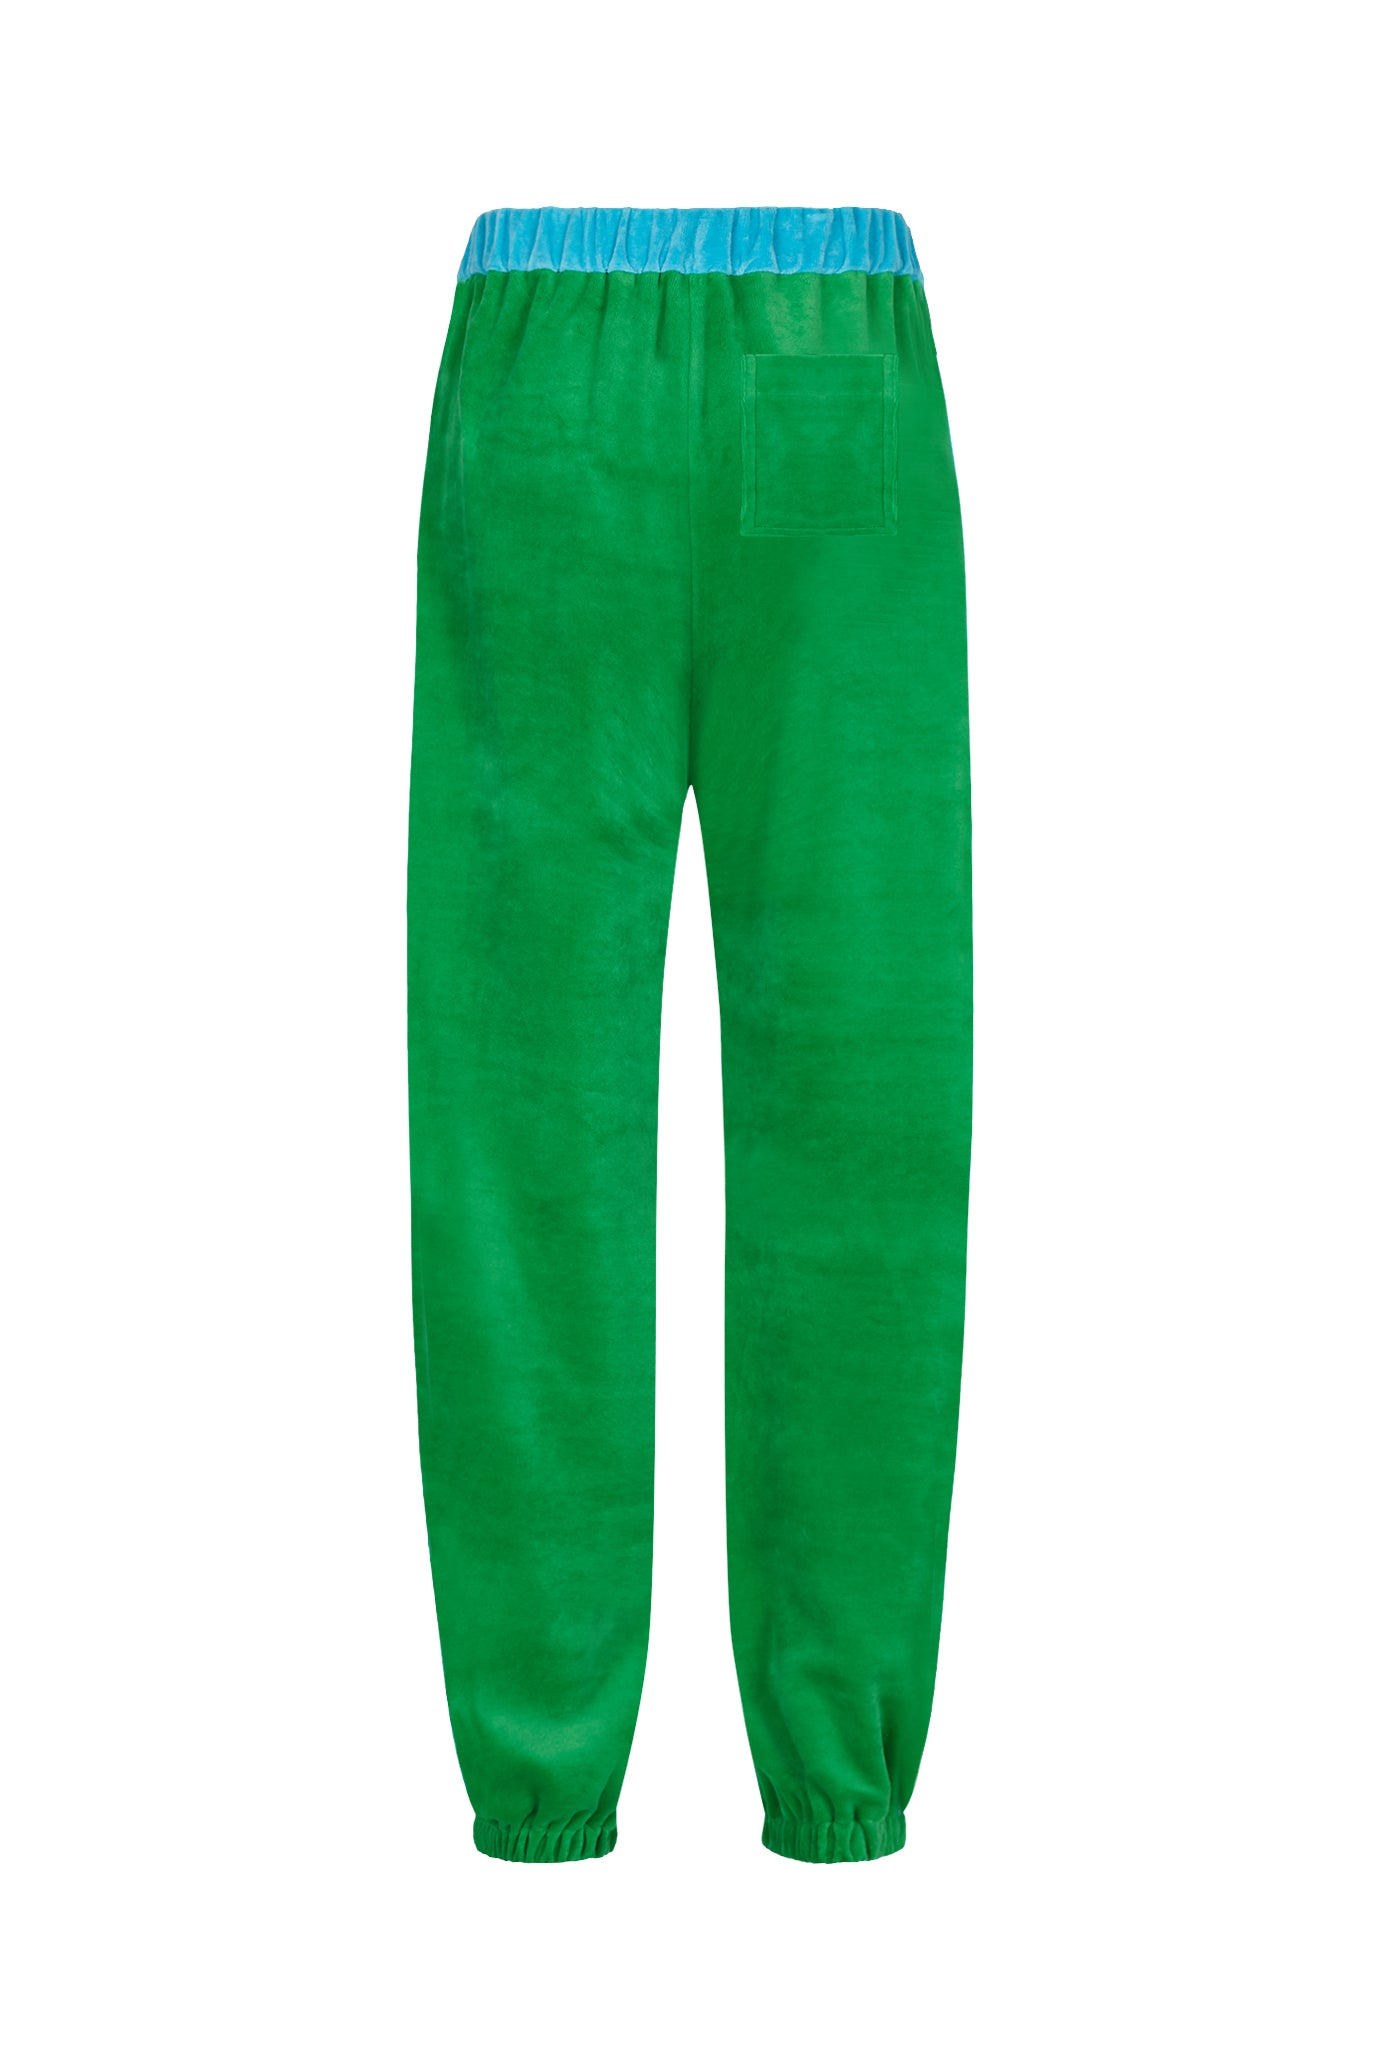 classic wide leg jogger gathered emerald green and blue velour womens serena bute